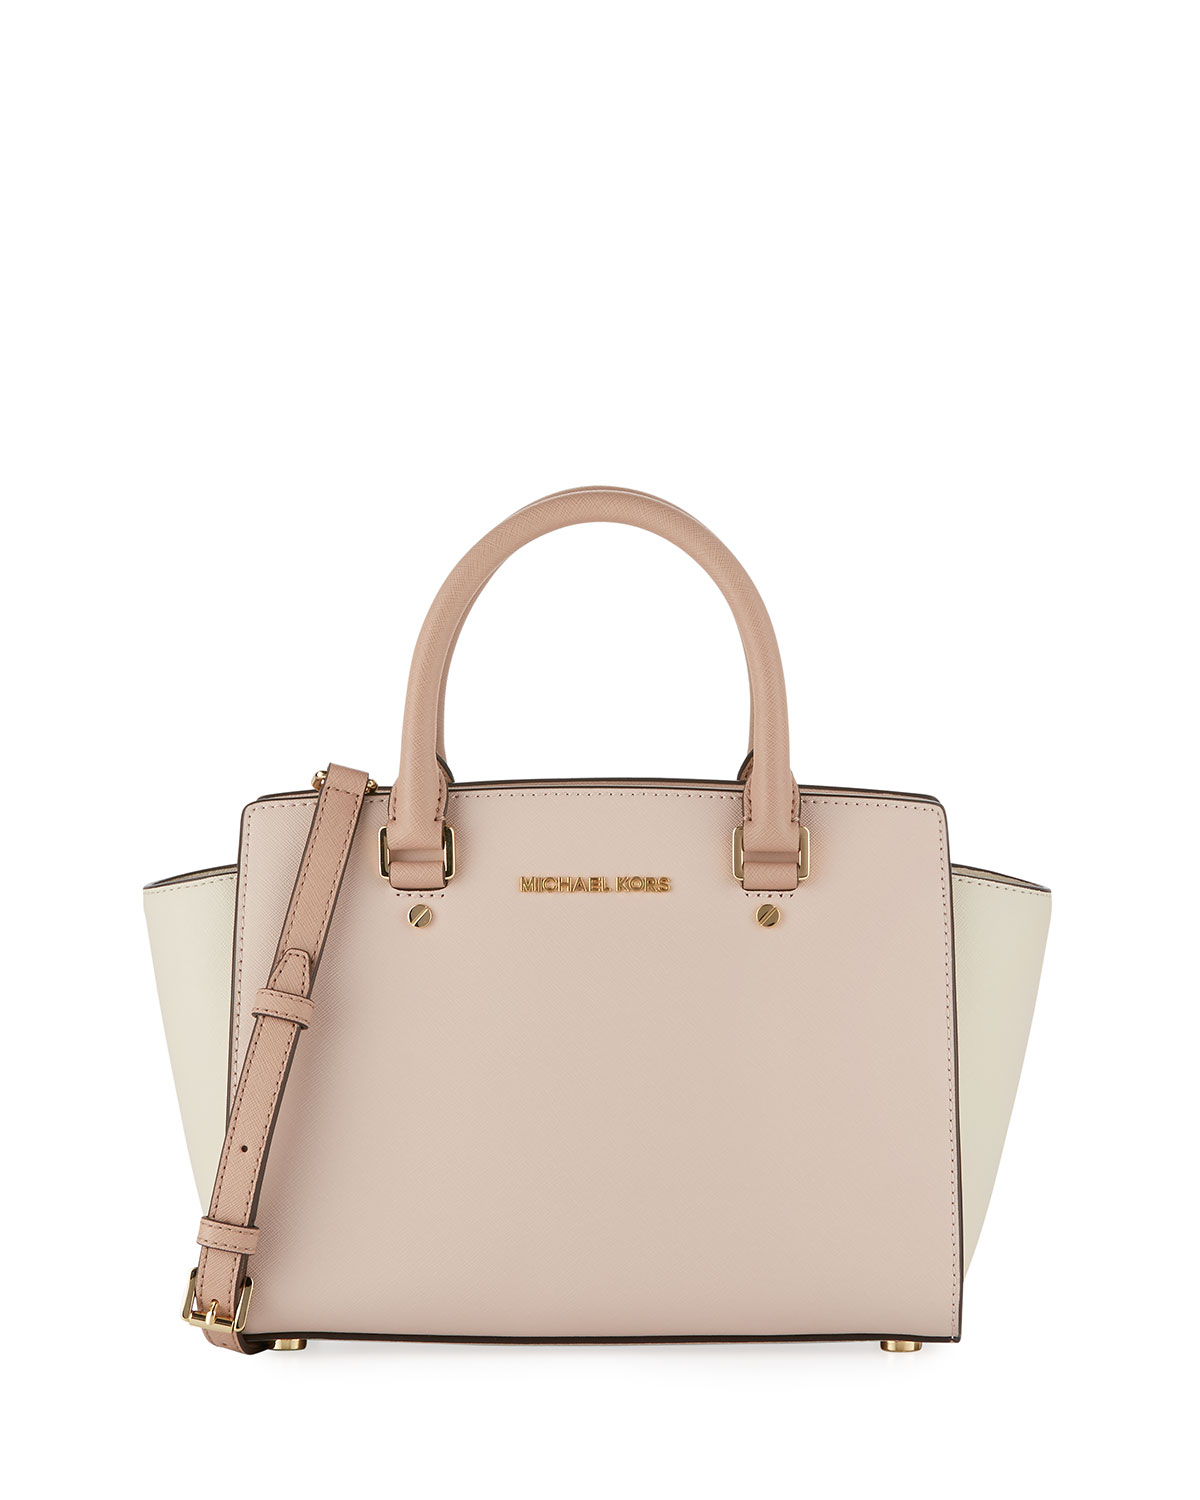 b3fbaf30062bb5 MICHAEL Michael Kors Selma Medium Colorblock Saffiano Tote Bag ...